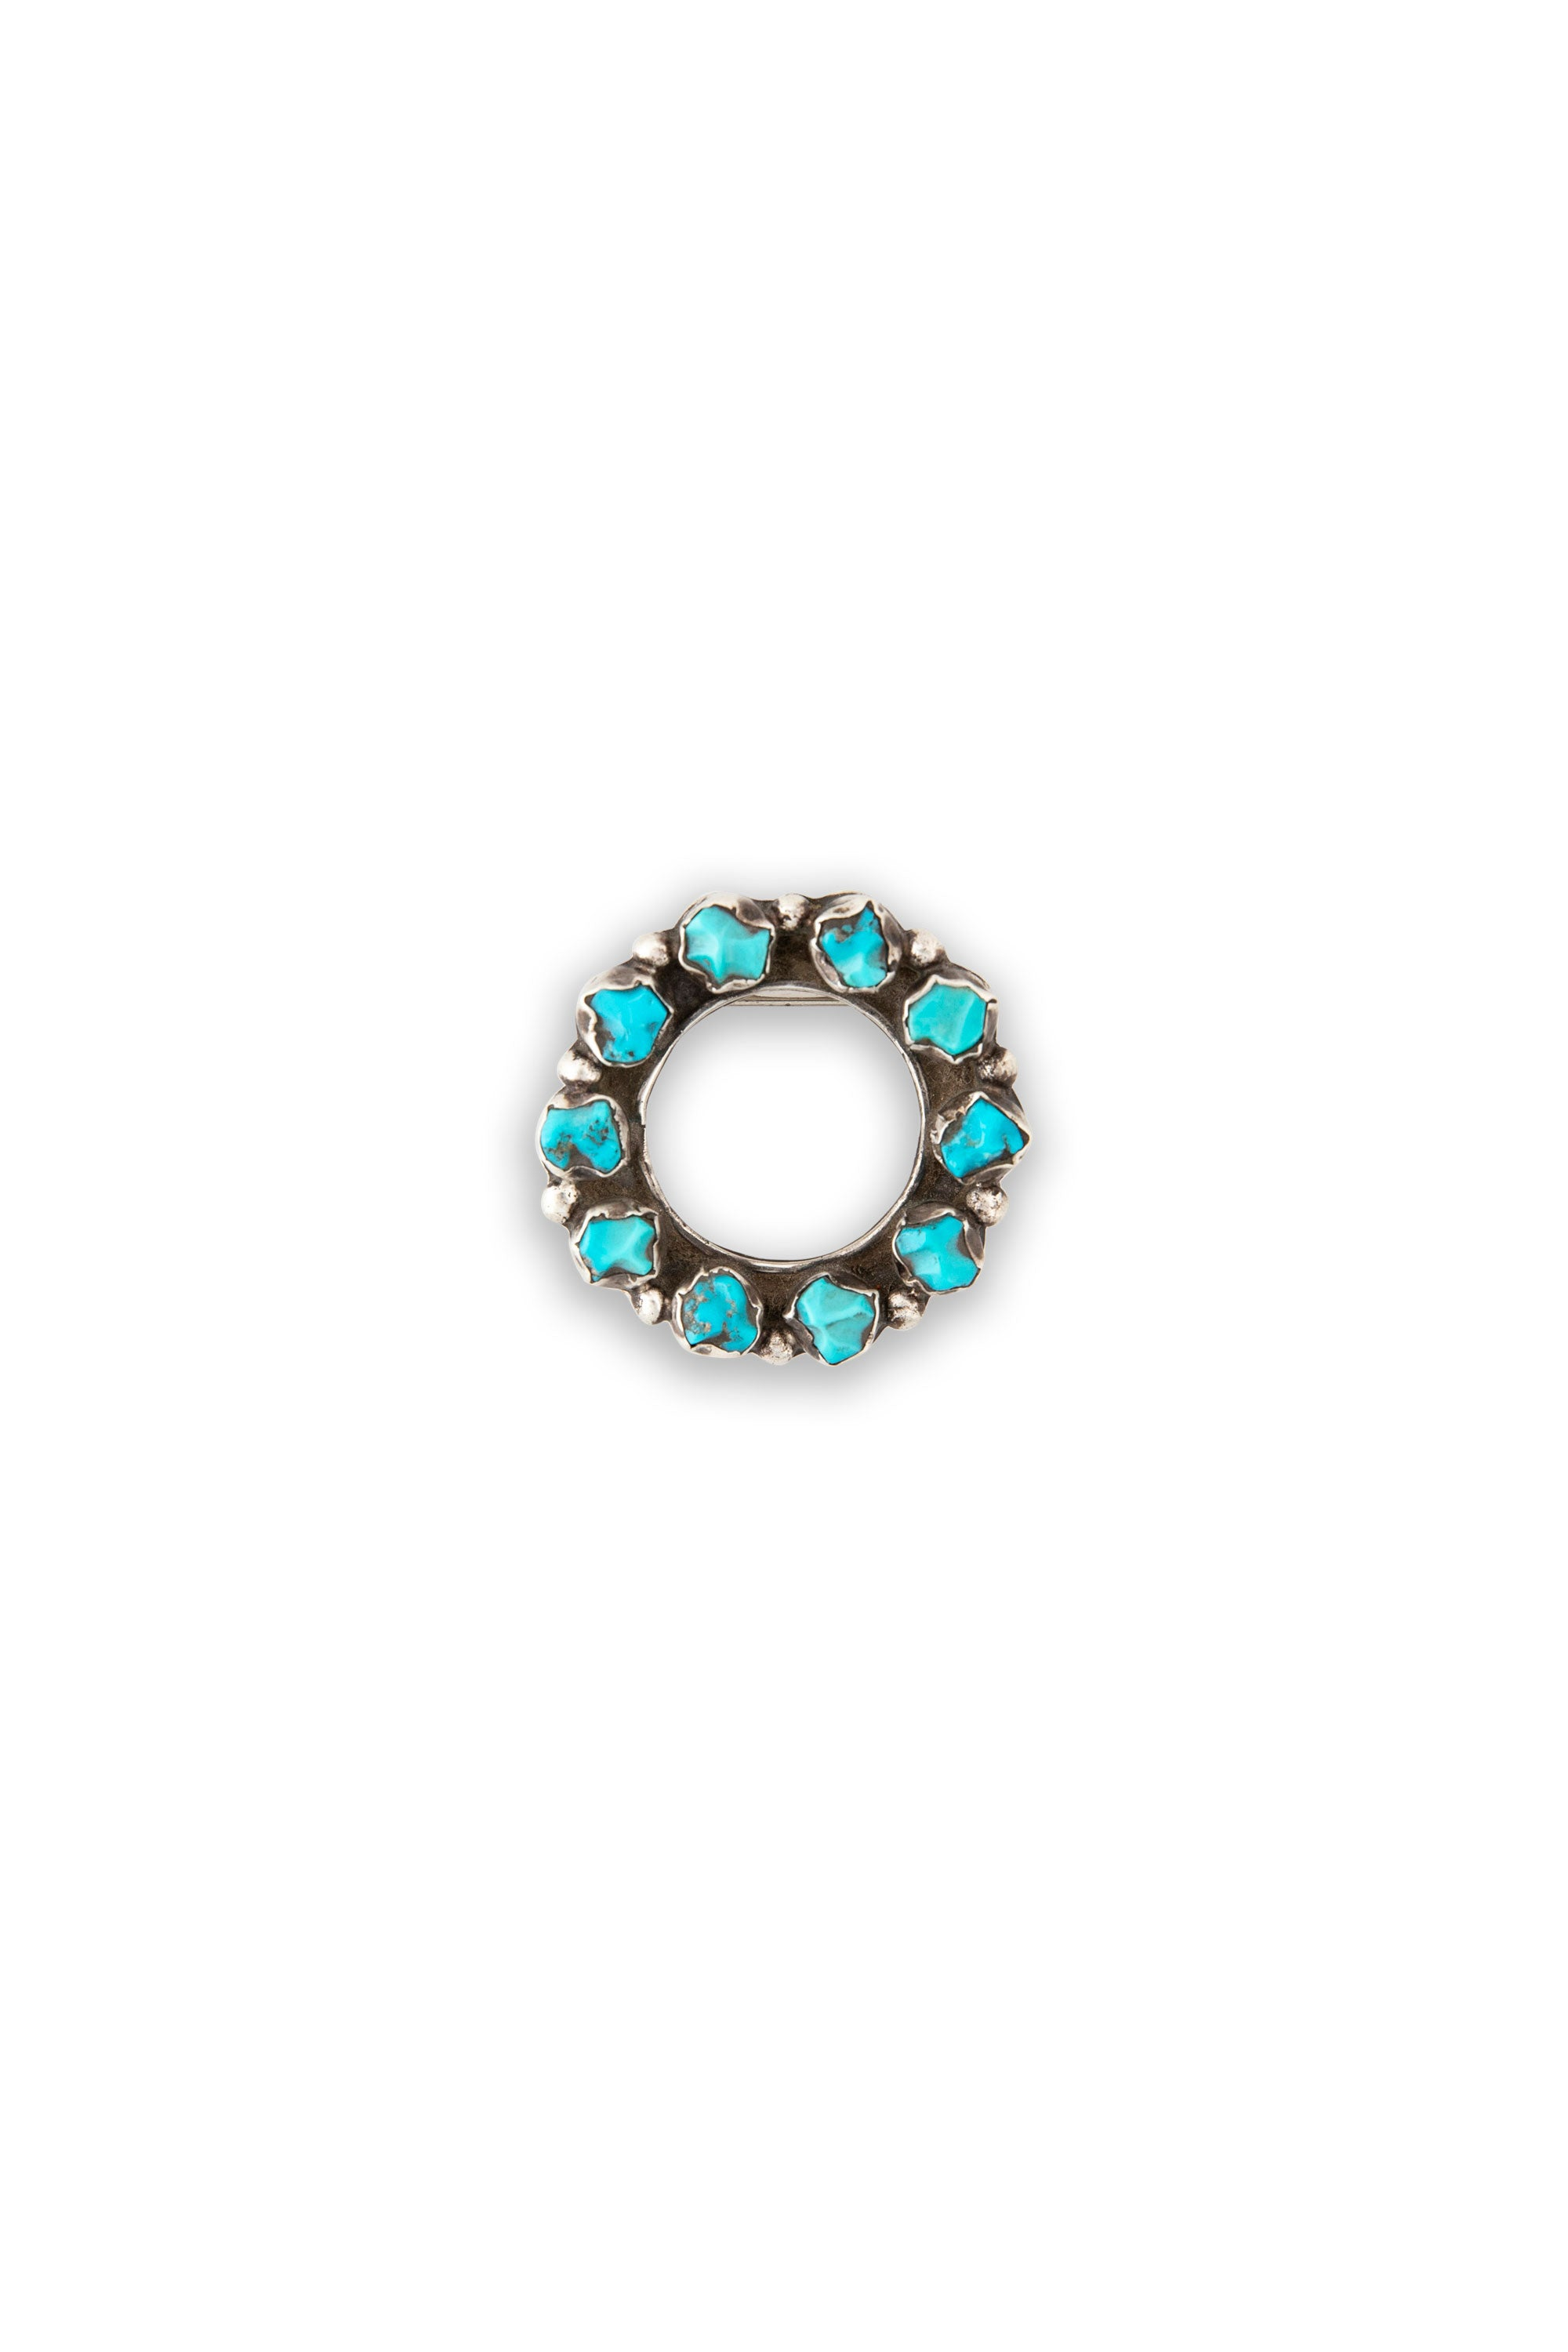 Pin, Cluster, Sterling Silver & Turquoise, Eternity, Vintage, 283